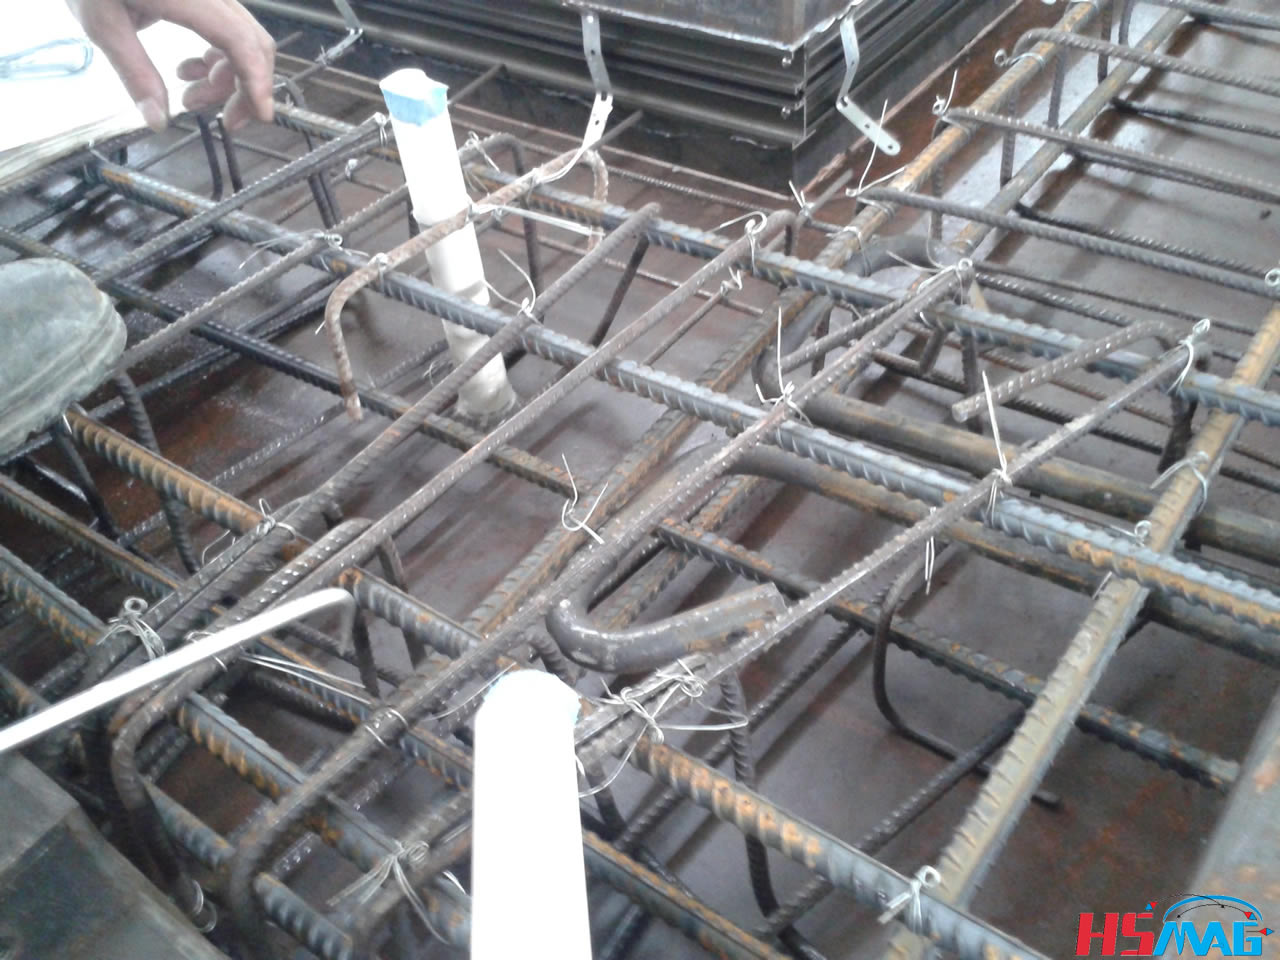 Embedded Pvc Pipe Fixed Magnet